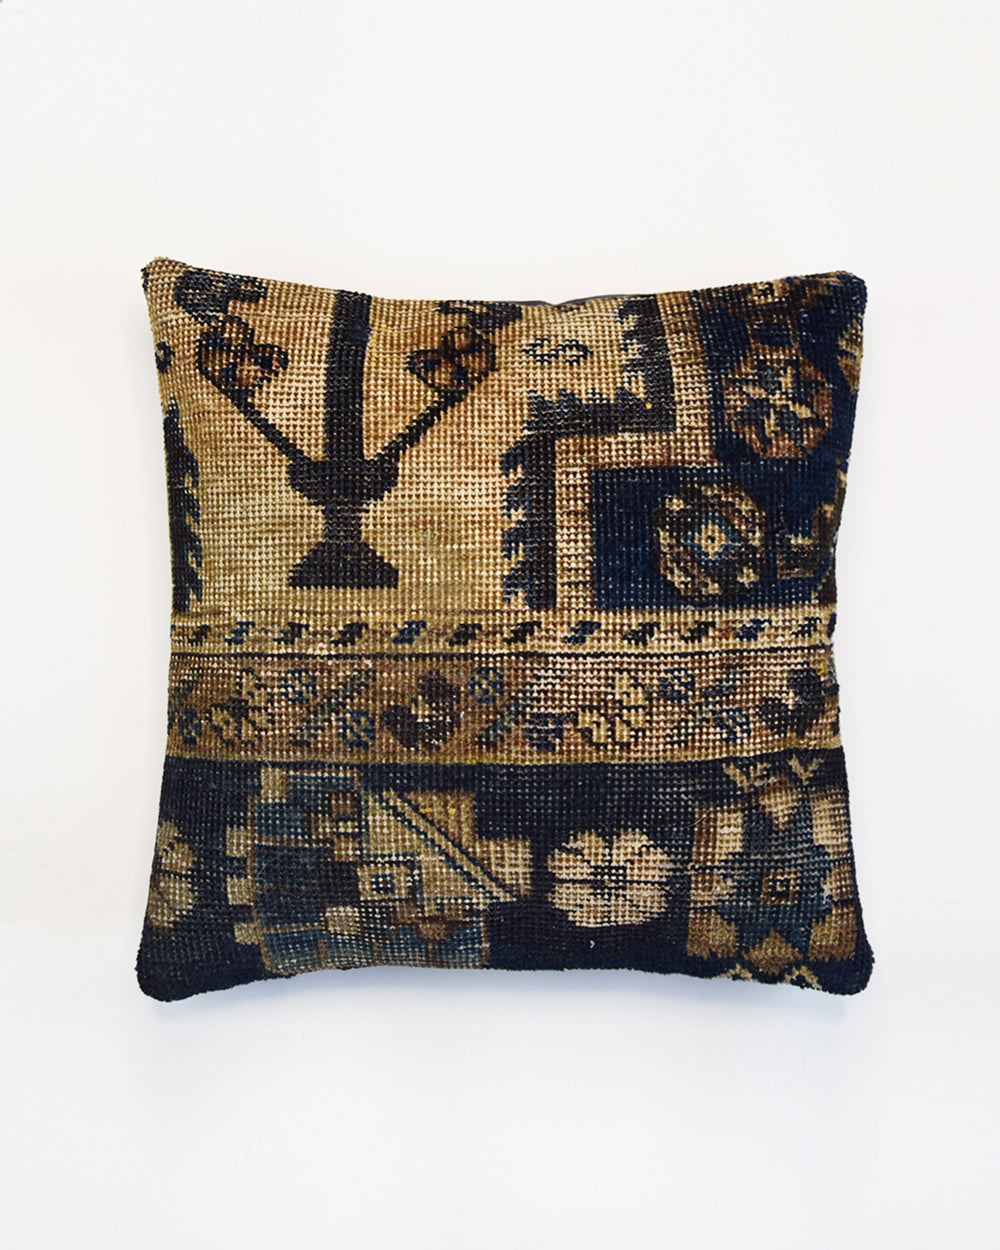 Cushion Cover No. 23